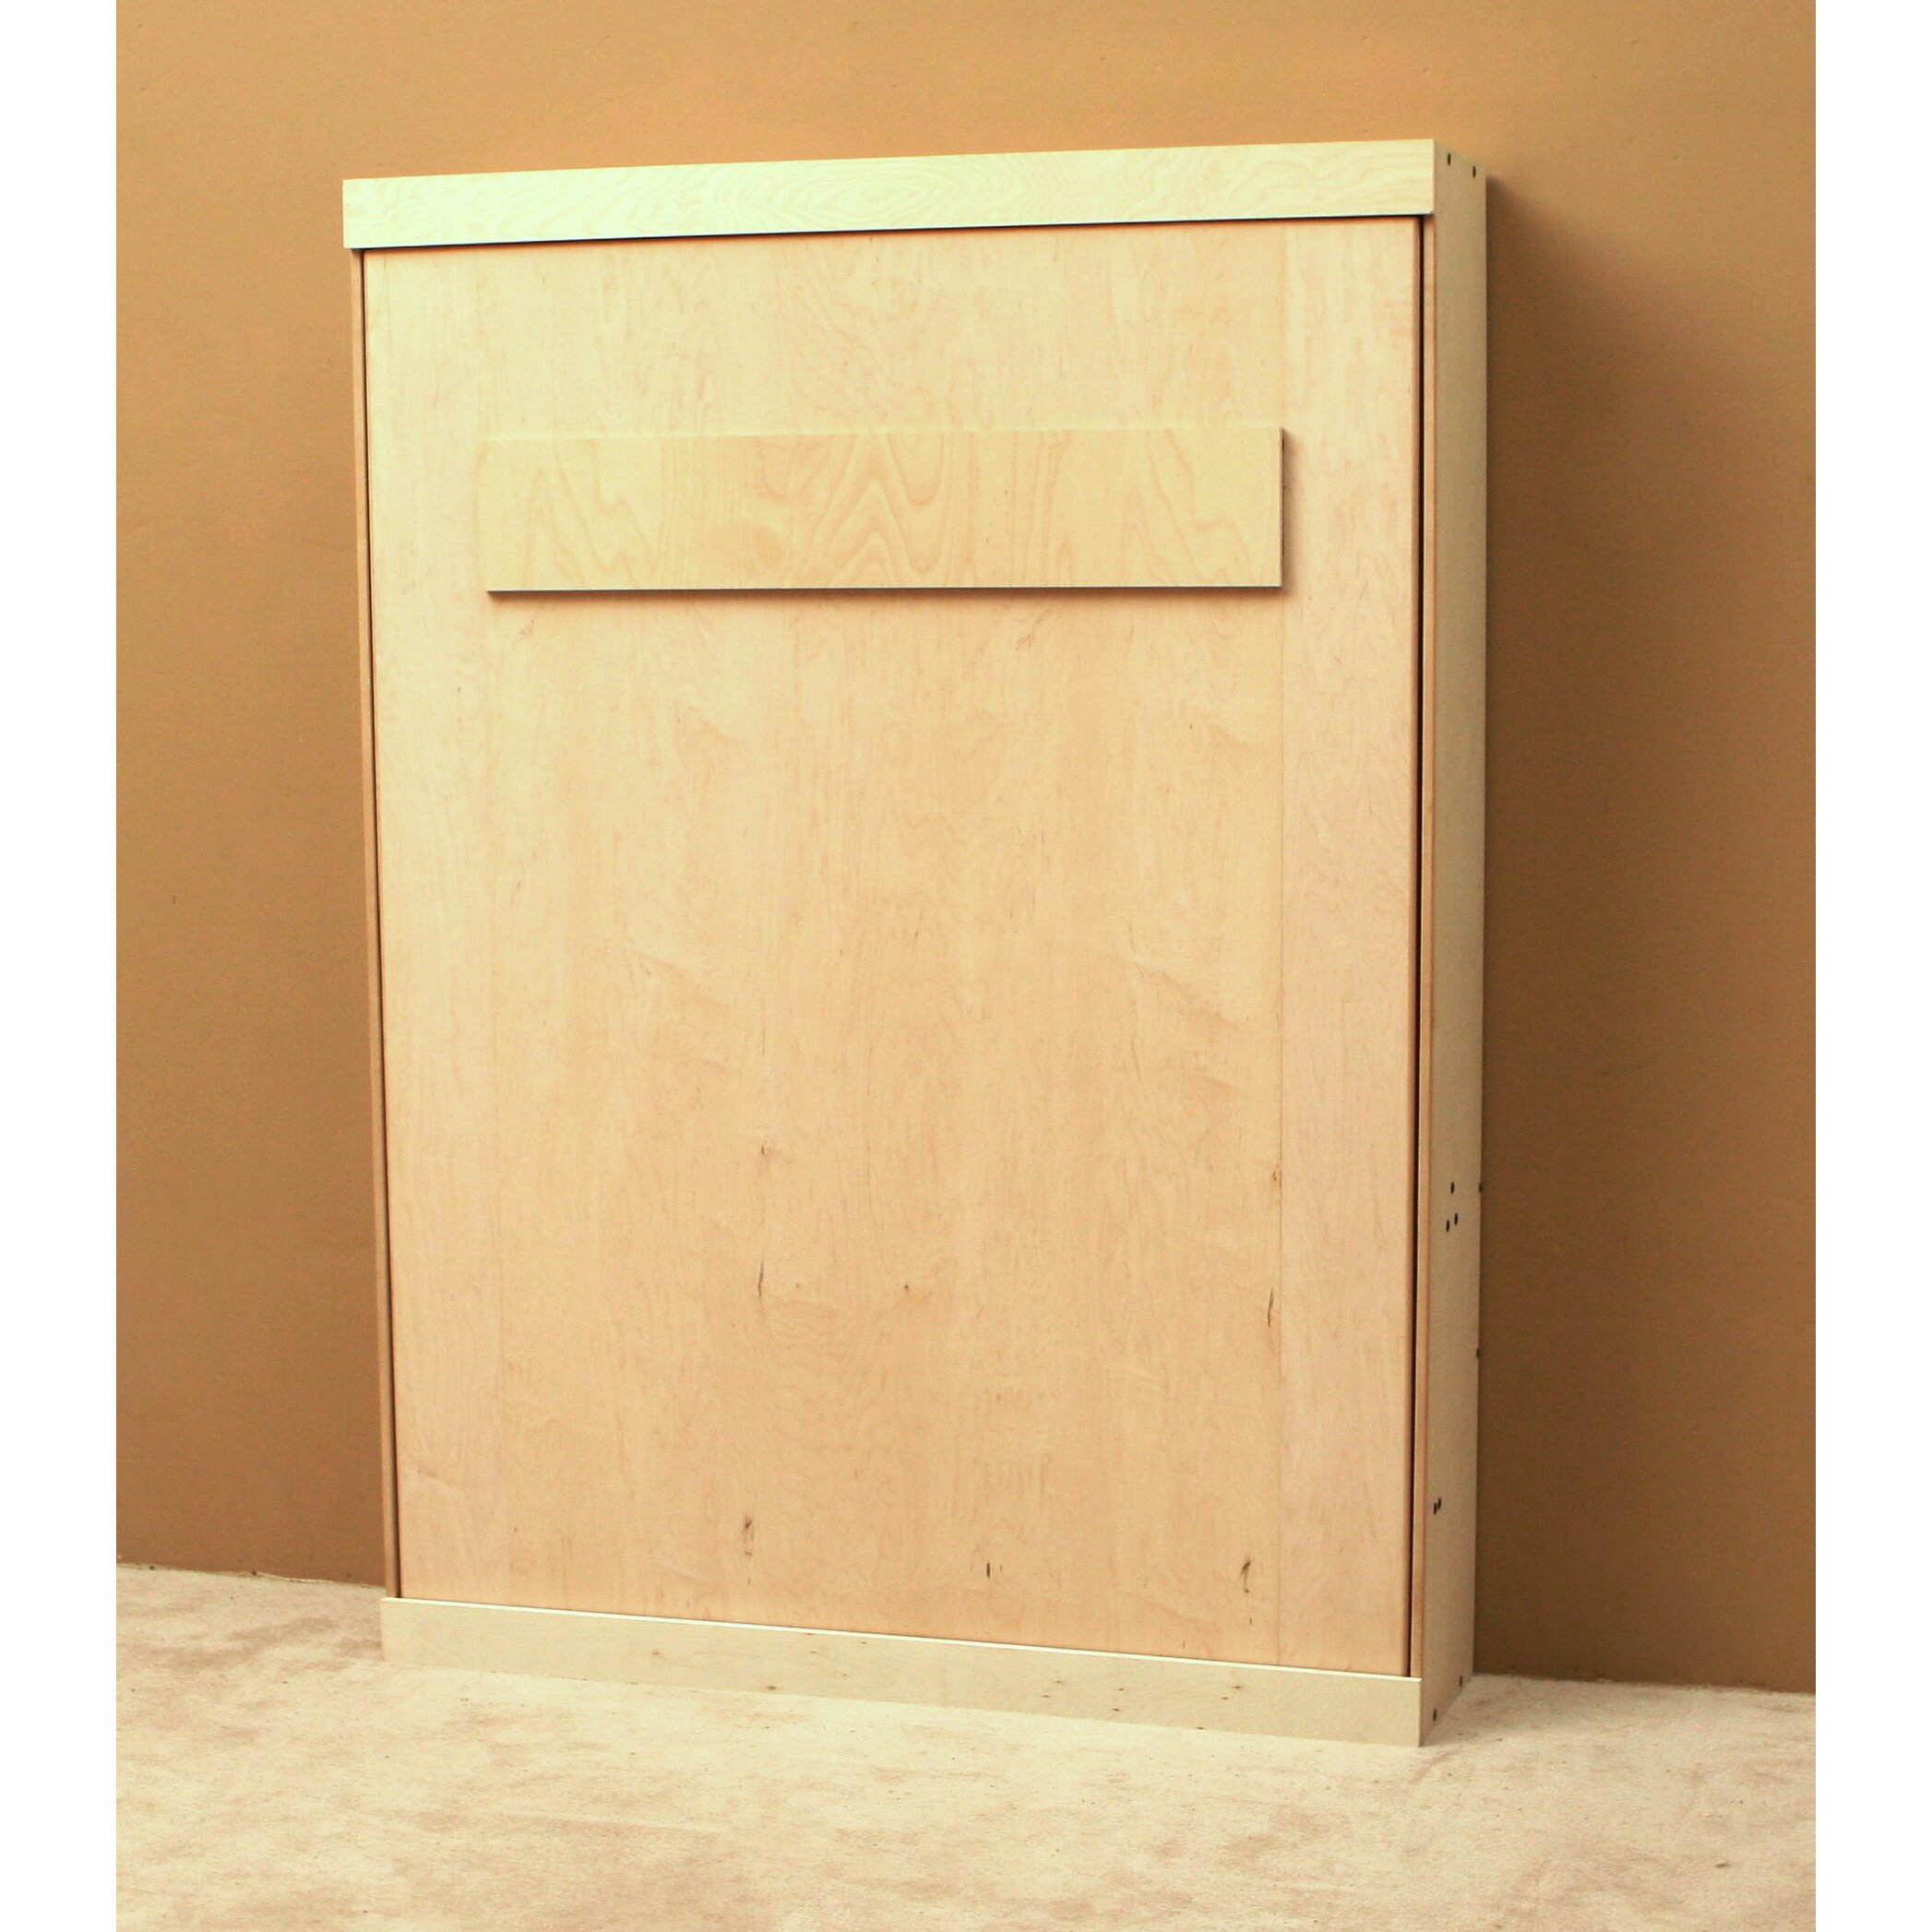 Pictures of murphy beds - Wallbeds Paint Grade Murphy Bed